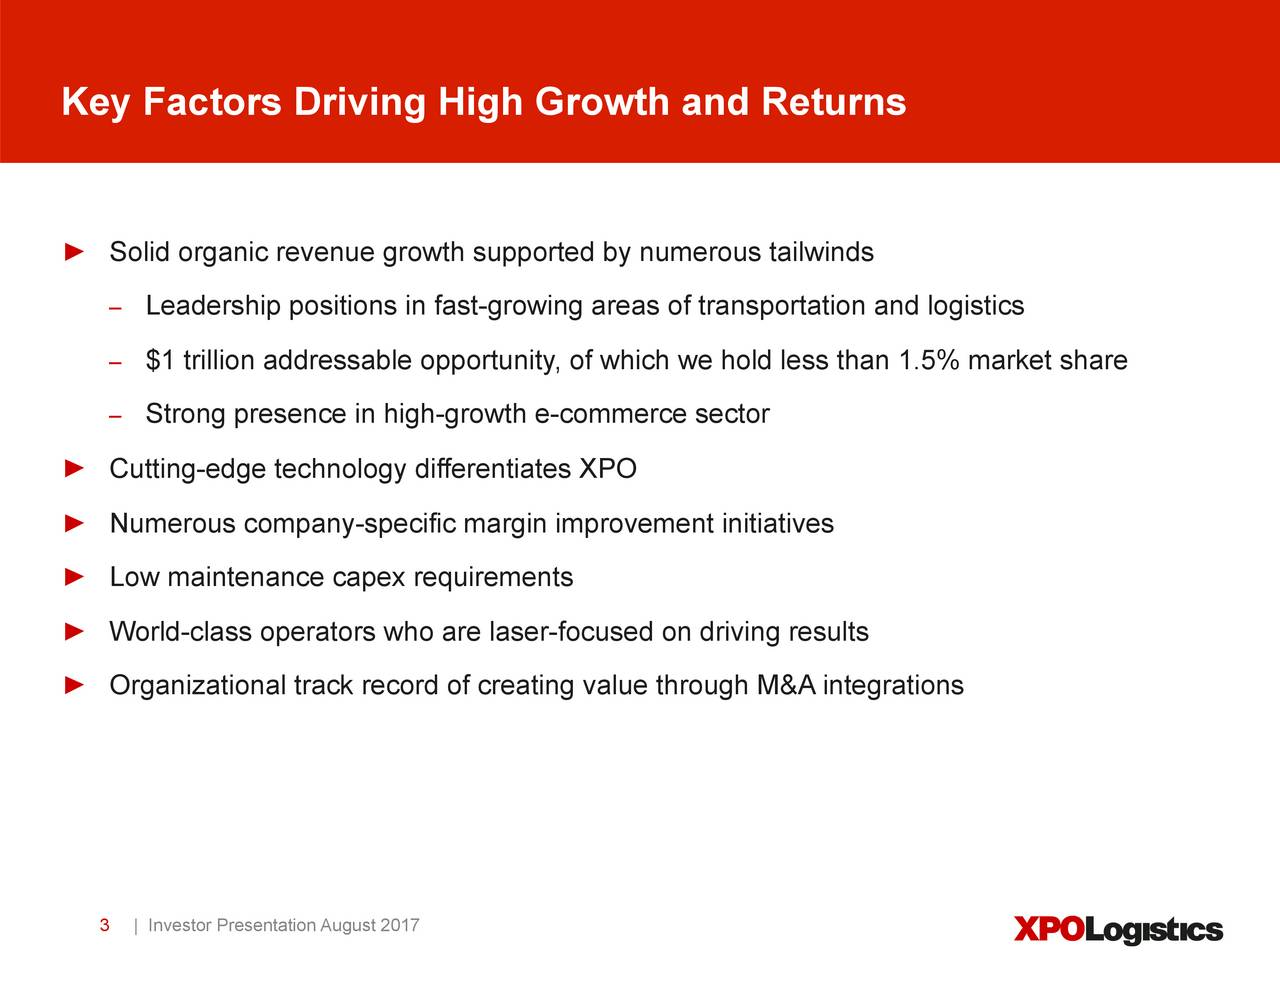 Solid organic revenue growth supported by numerous tailwinds Leadership positions in fast-growing areas of transportation and logistics $1 trillion addressable opportunity, of which we hold less than 1.5% market share Strong presence in high-growth e-commerce sector Cutting-edge technology differentiates XPO Numerous company-specific margin improvement initiatives Low maintenance capex requirements World-class operators who are laser-focused on driving results Organizational track record of creating value through M&A integrations 3   Investor Presentation August 2017